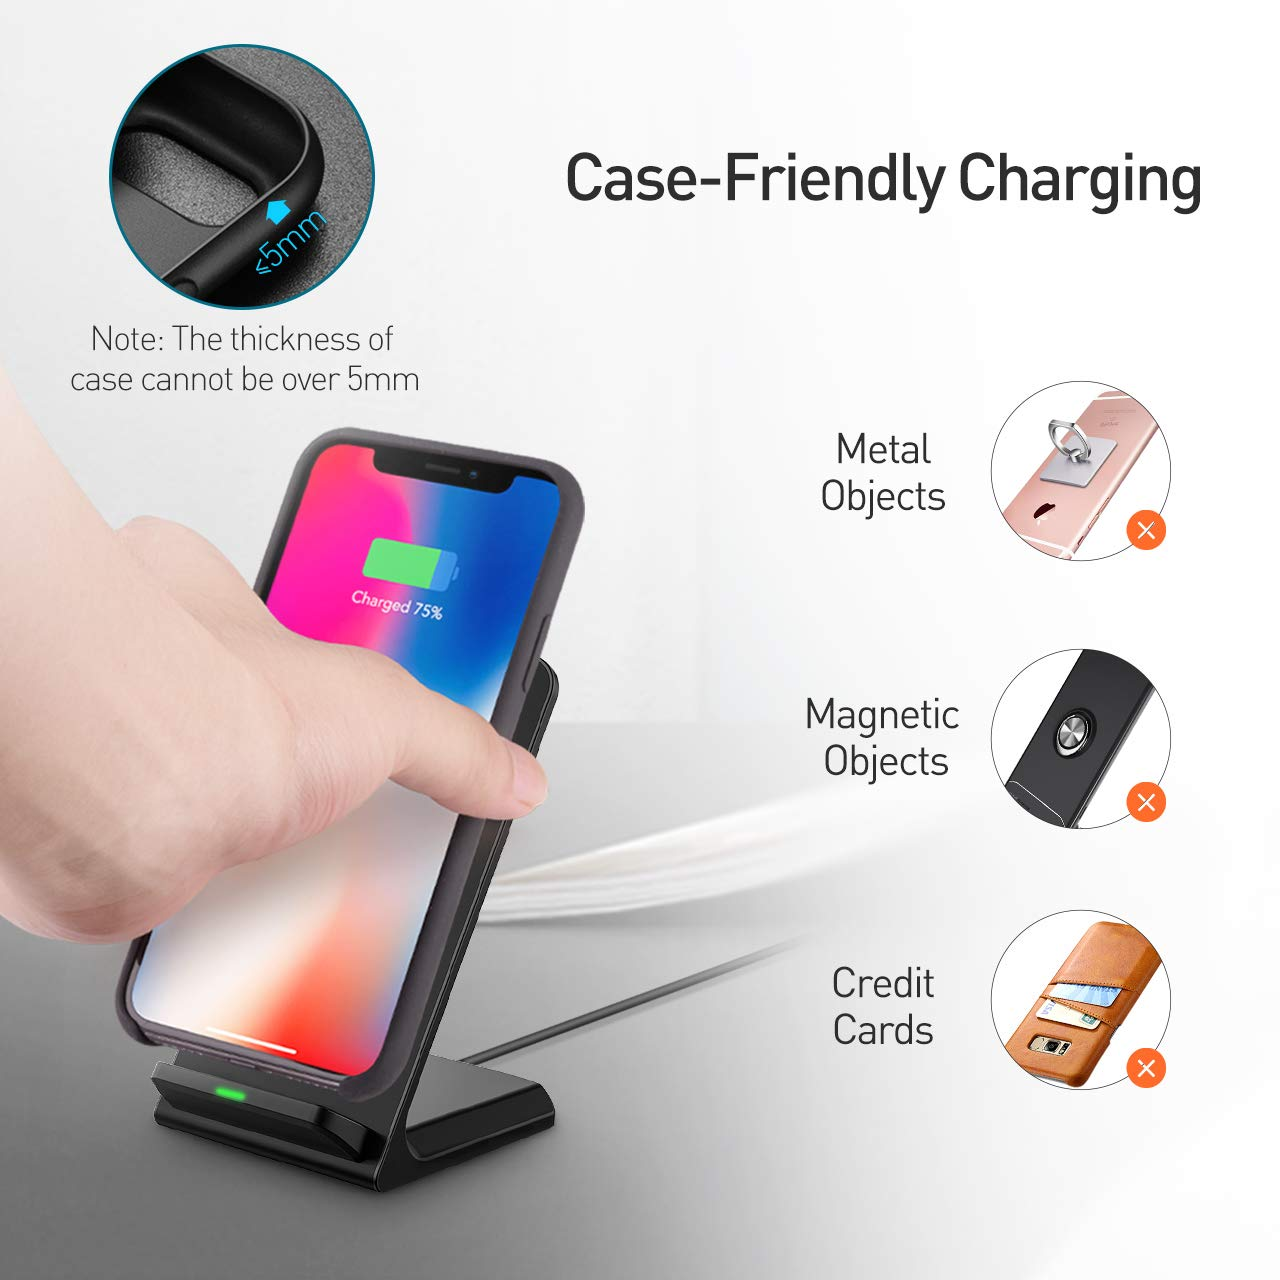 Seneo (Upgraded) Wireless Charger, Qi Certified Fast Wireless Charger Stand with QC 3.0 Adapter for Galaxy S9/S9+ Note 8/5 S8/S8+ S7/S7 Edge S6 Edge+, Standard Qi Charger for iPhoneX/8/8 Plus by Seneo (Image #6)